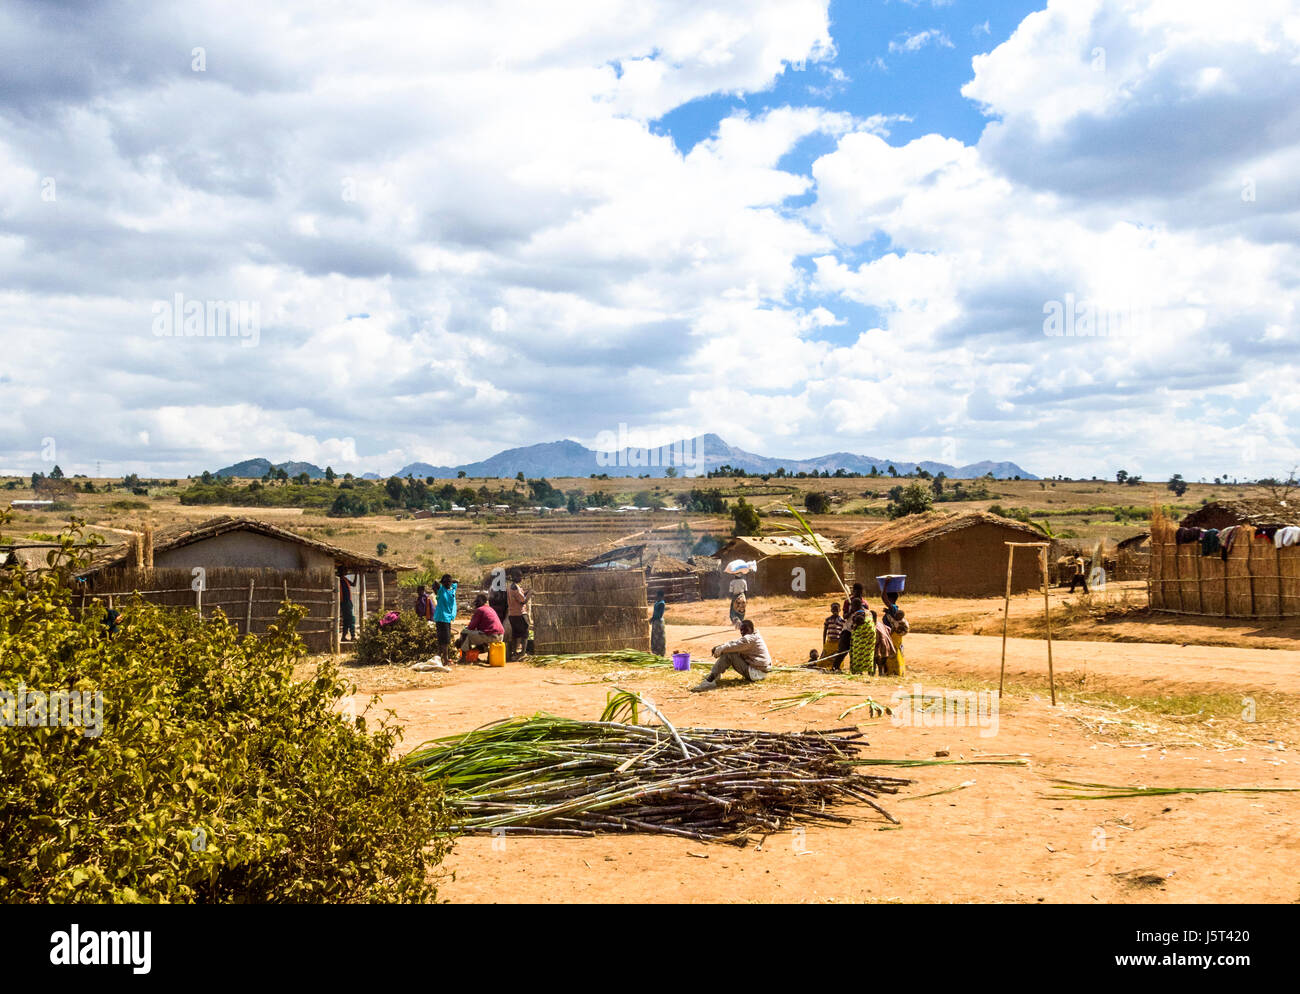 Sugar cane piled for sale in a rural village in Malawi, Africa - Stock Image